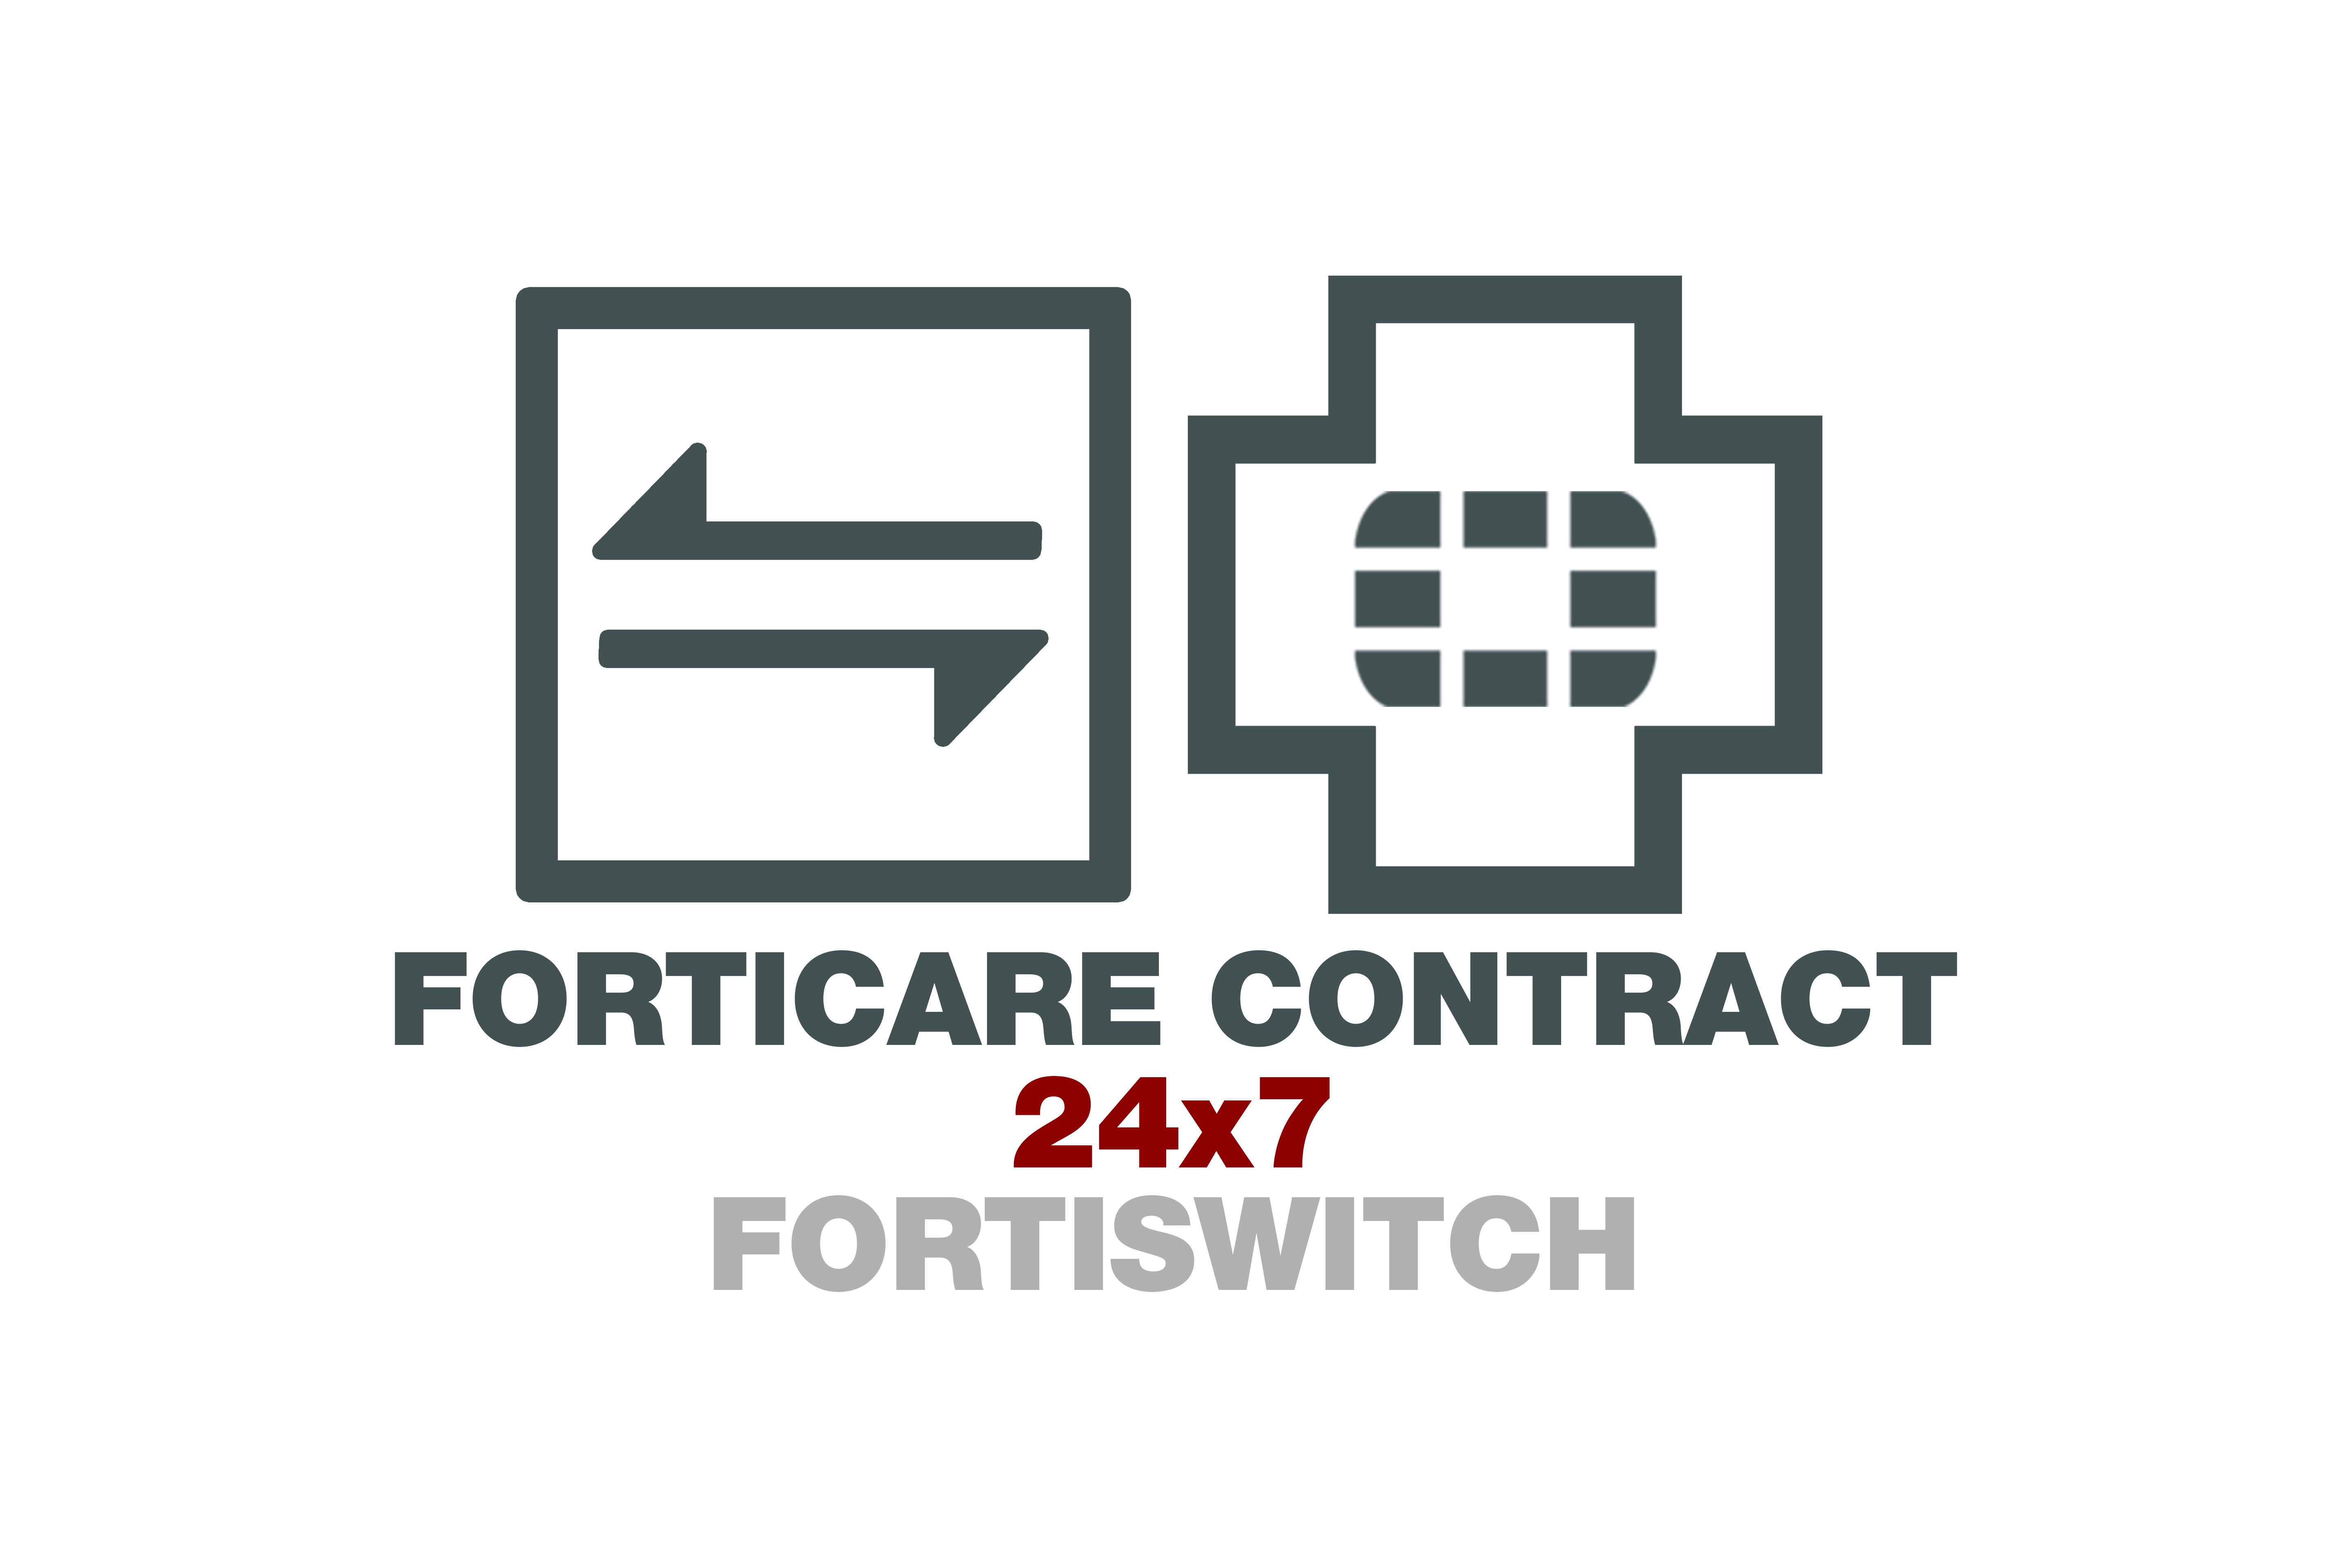 FortiSwtch-548D-FPOE 24x7 FortiCare Contract